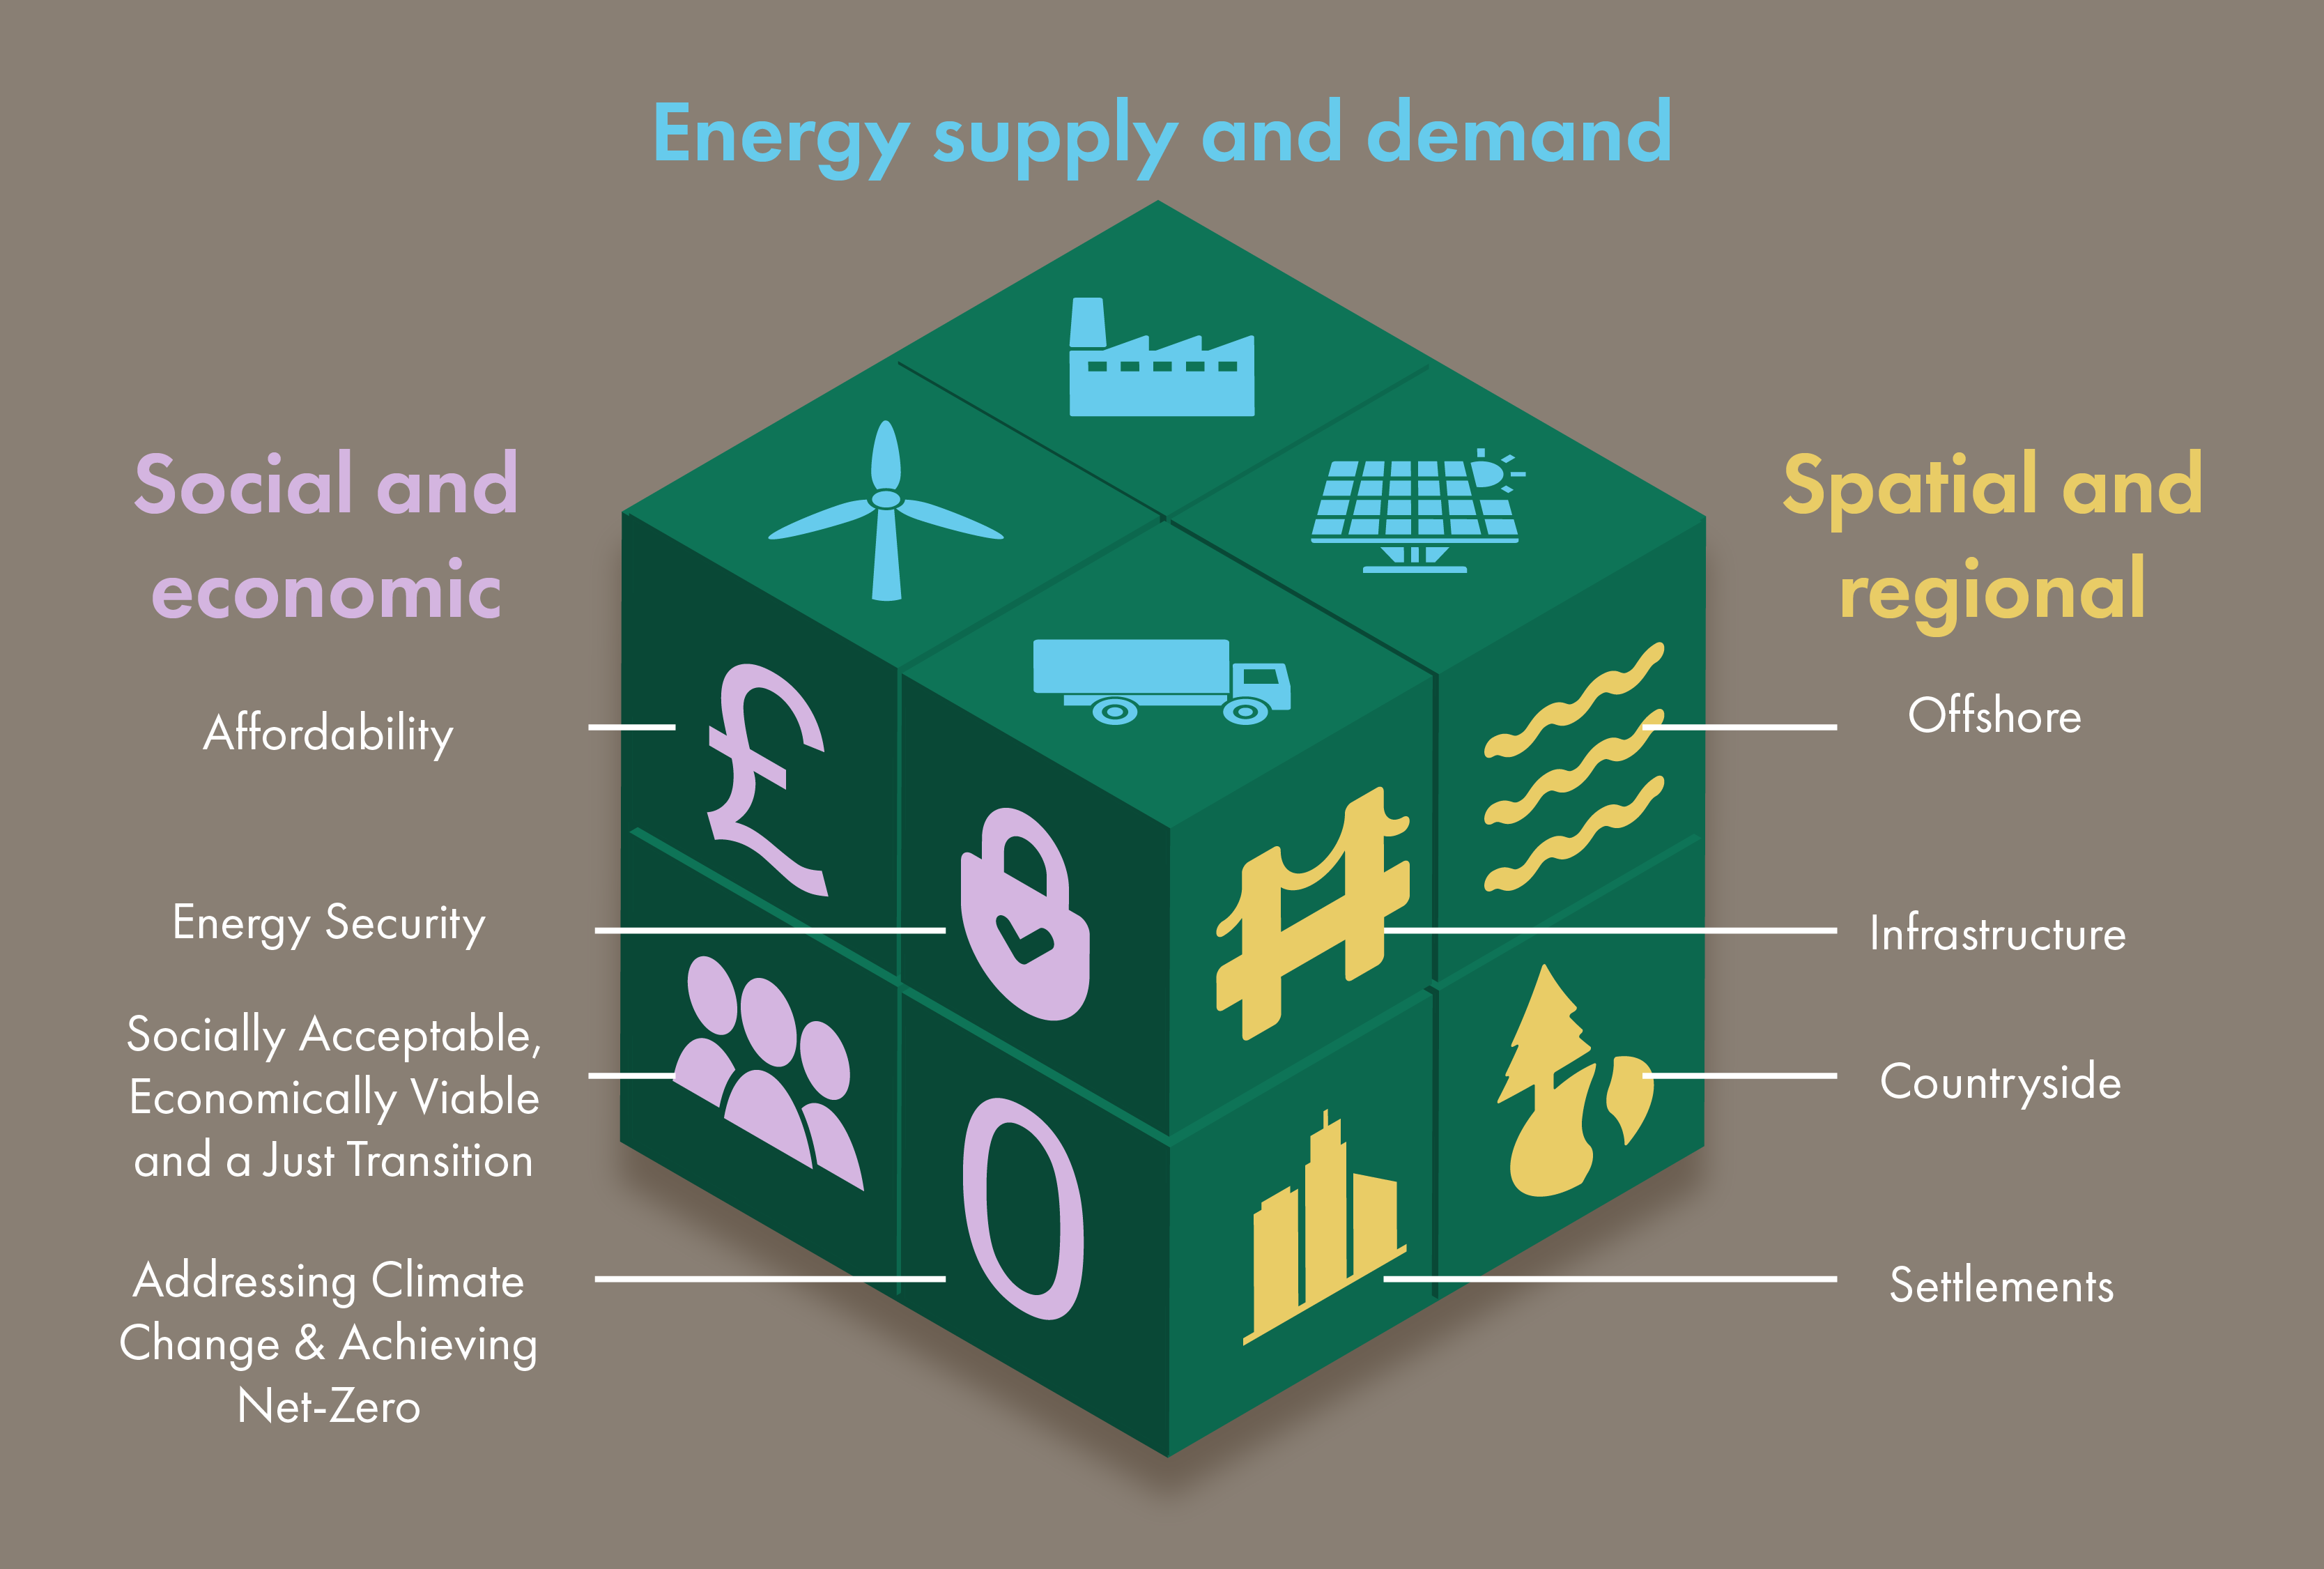 Energy policy has to try to solve numerous paradoxes of supply and demand - like a Rubik's Cube, the challenge is to manage horizontal (energy), vertical (industrial) and spatial (regional) positions, where policies and actions to address a pressing issue on one plane have potentially detrimental impacts on another.